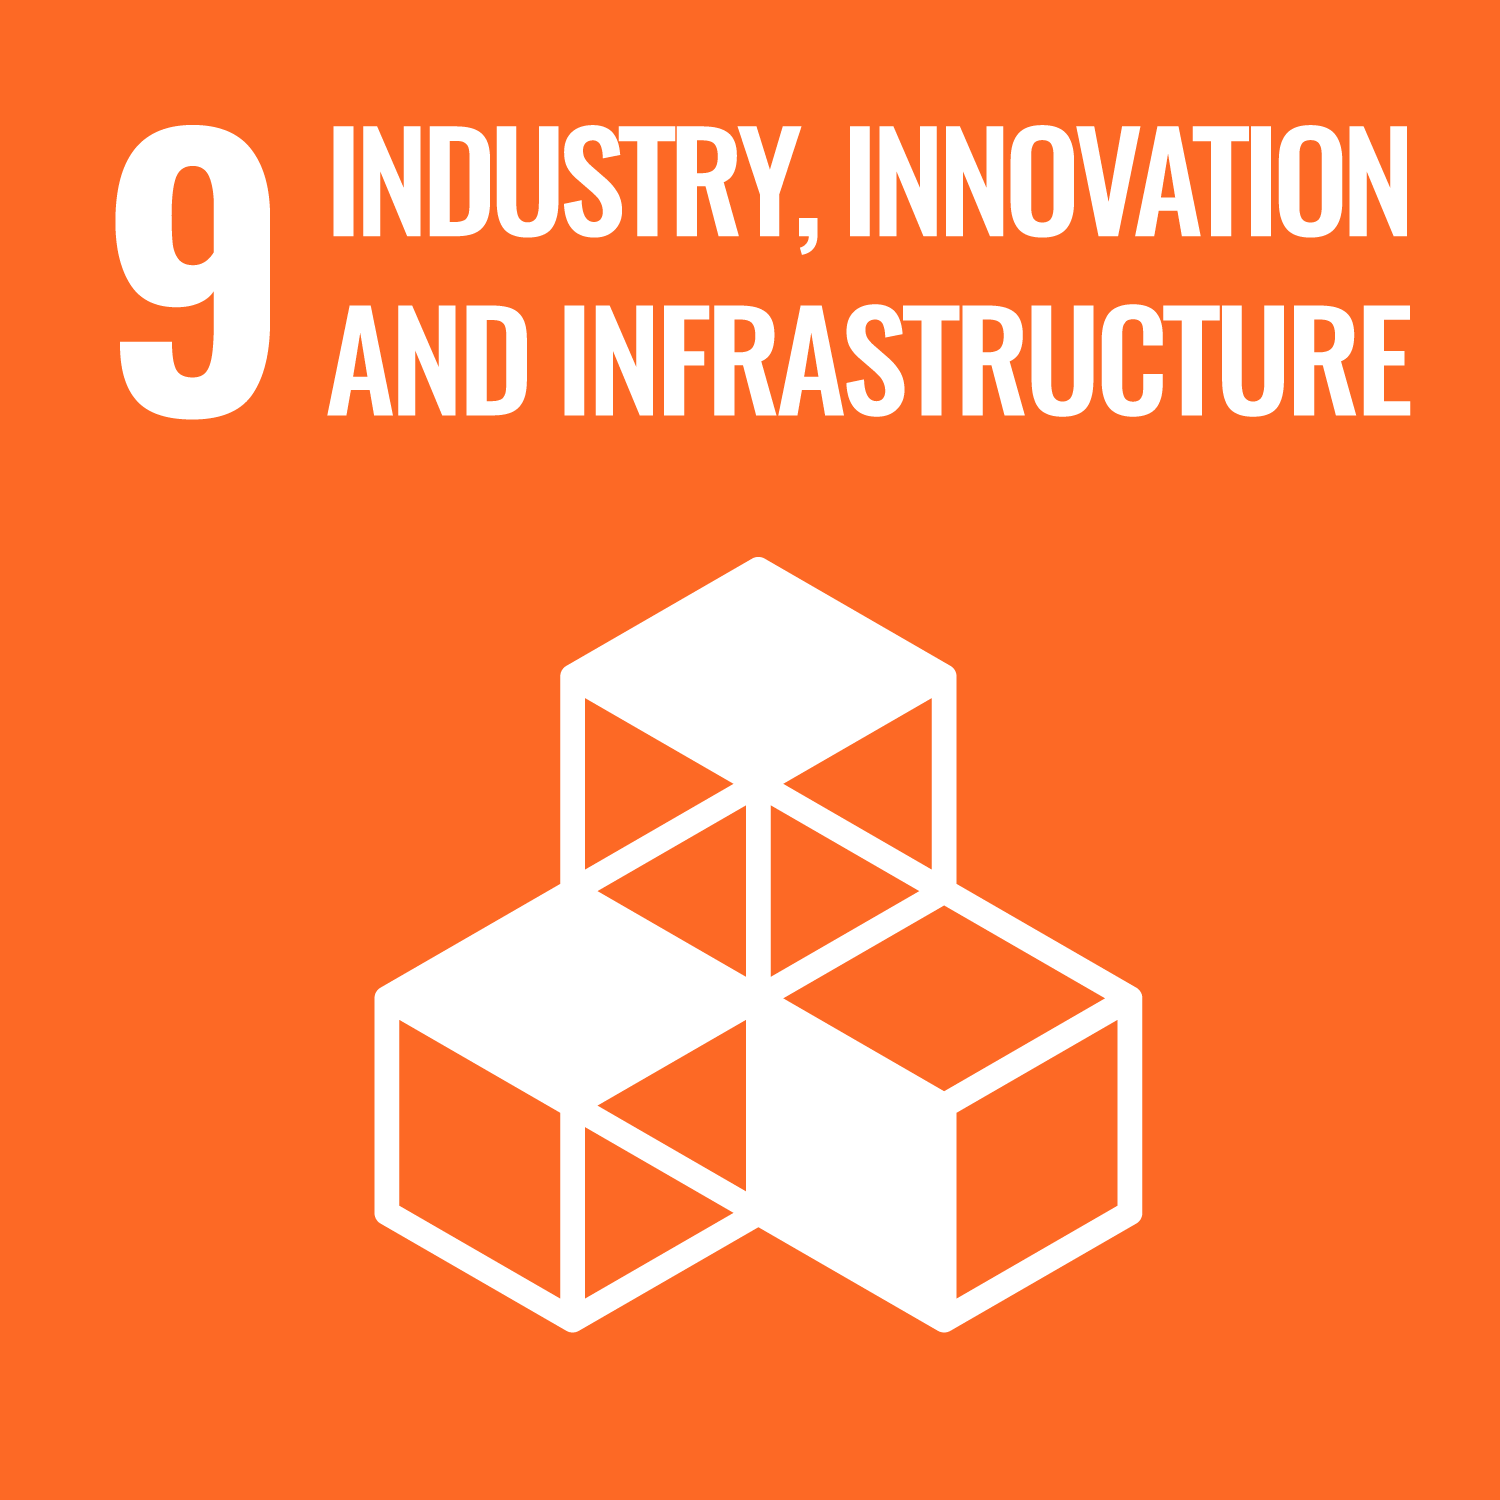 9. Industry, innovation and infrastructure We want to unleash sustainable industrialization and resilient infrastructure that will tackle the climate crisis. How we target this SDG? We developed a near zero construction waste method using additive manufacturing to minimize construction waste going to landfill. We are continuously upgrading our technological capabilities and strategically focus our continuous research and development (R&D) evolution on sustainable solutions.